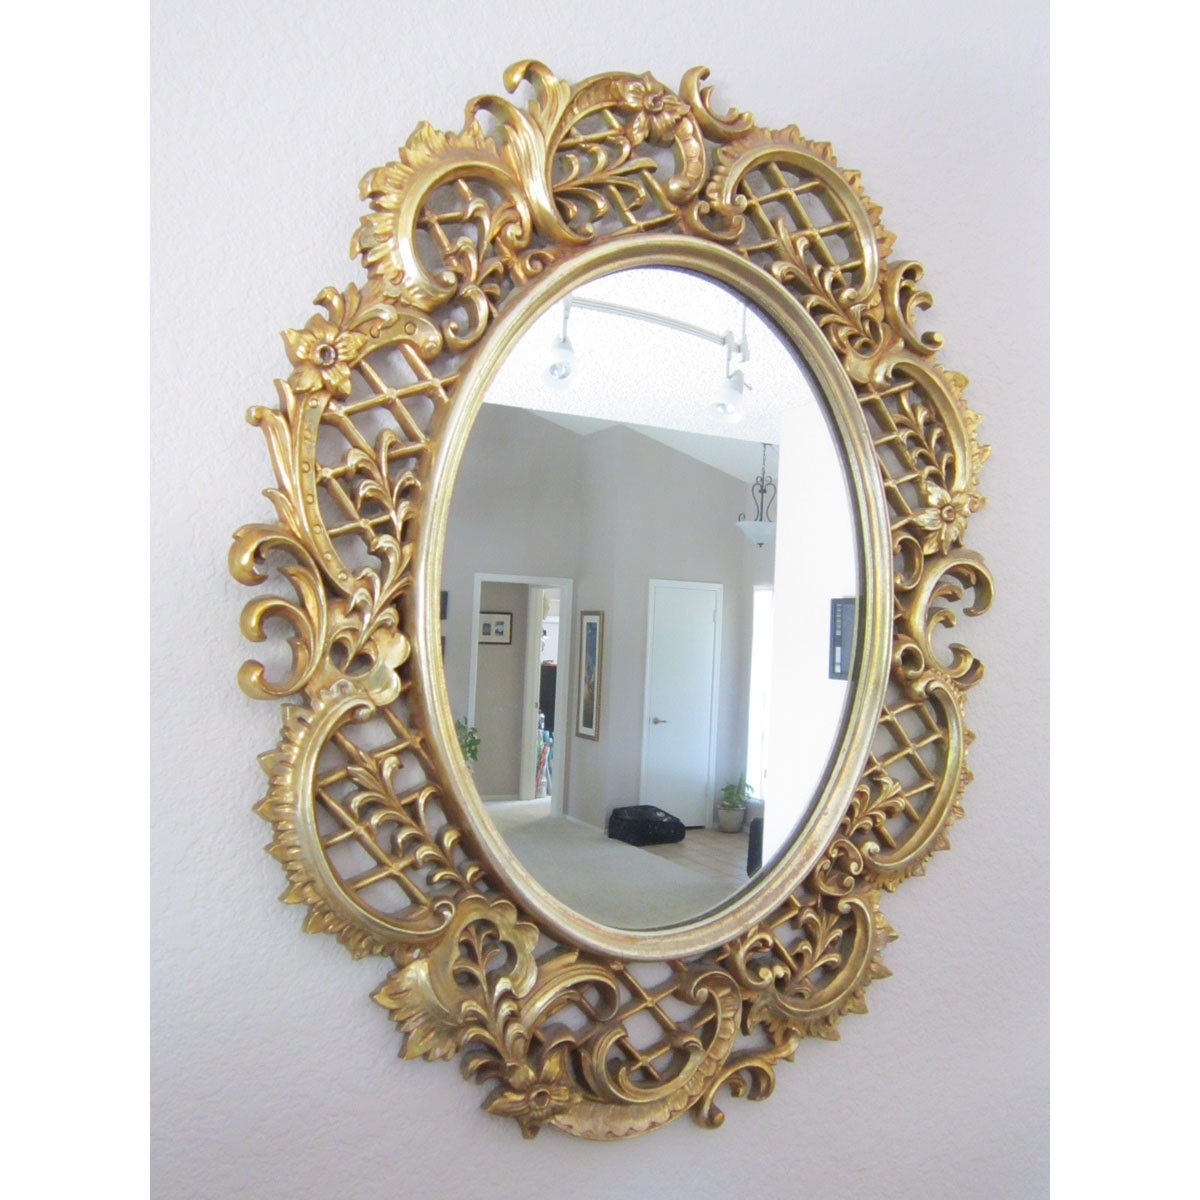 SALE vintage decorative mirror large framed mirror circa